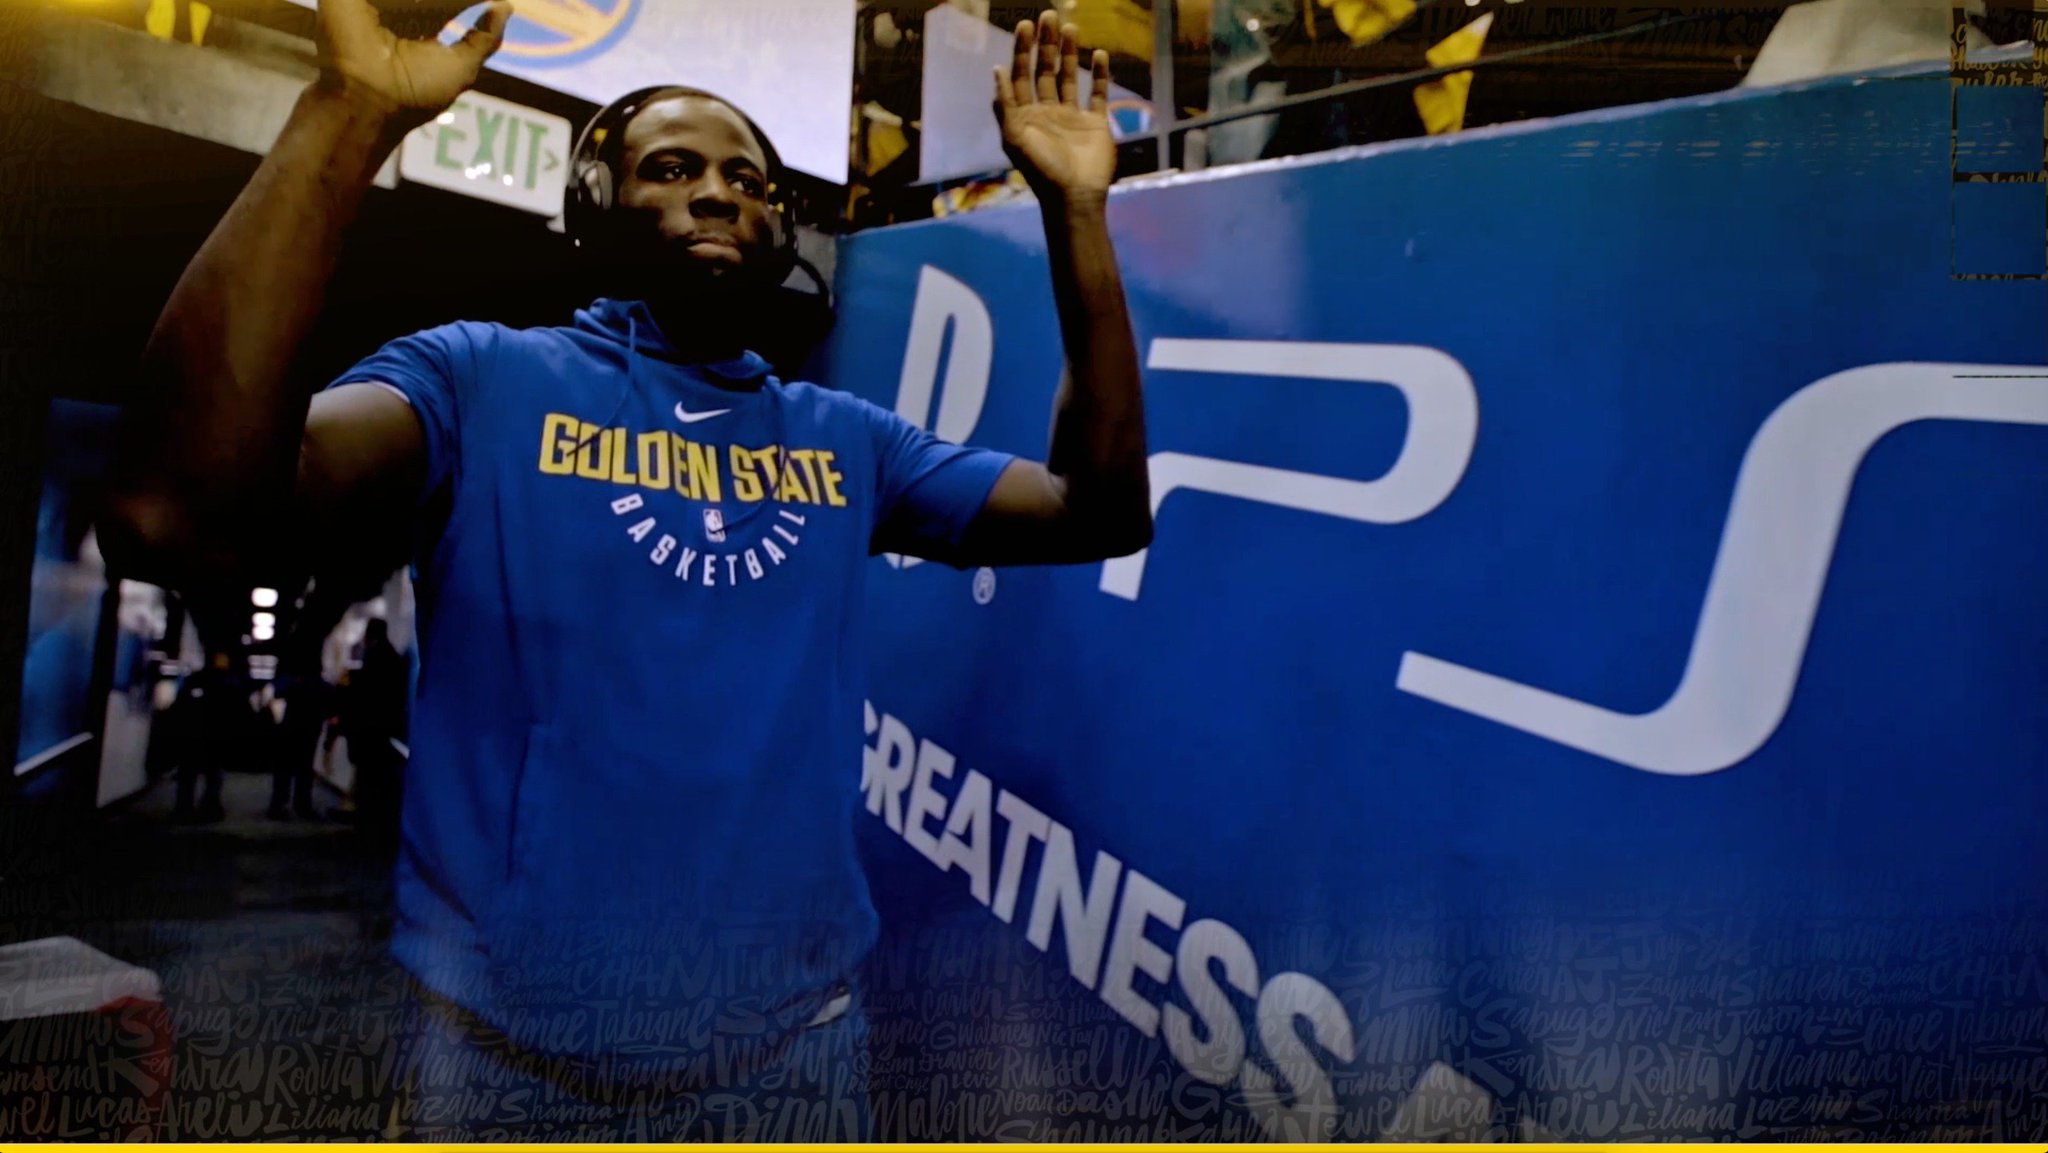 """""""Let's make sure we keep that sense of urgency, we keep playing with that edge."""" - Draymond Green #StrengthInNumbers https://t.co/wUmmRryLNs"""